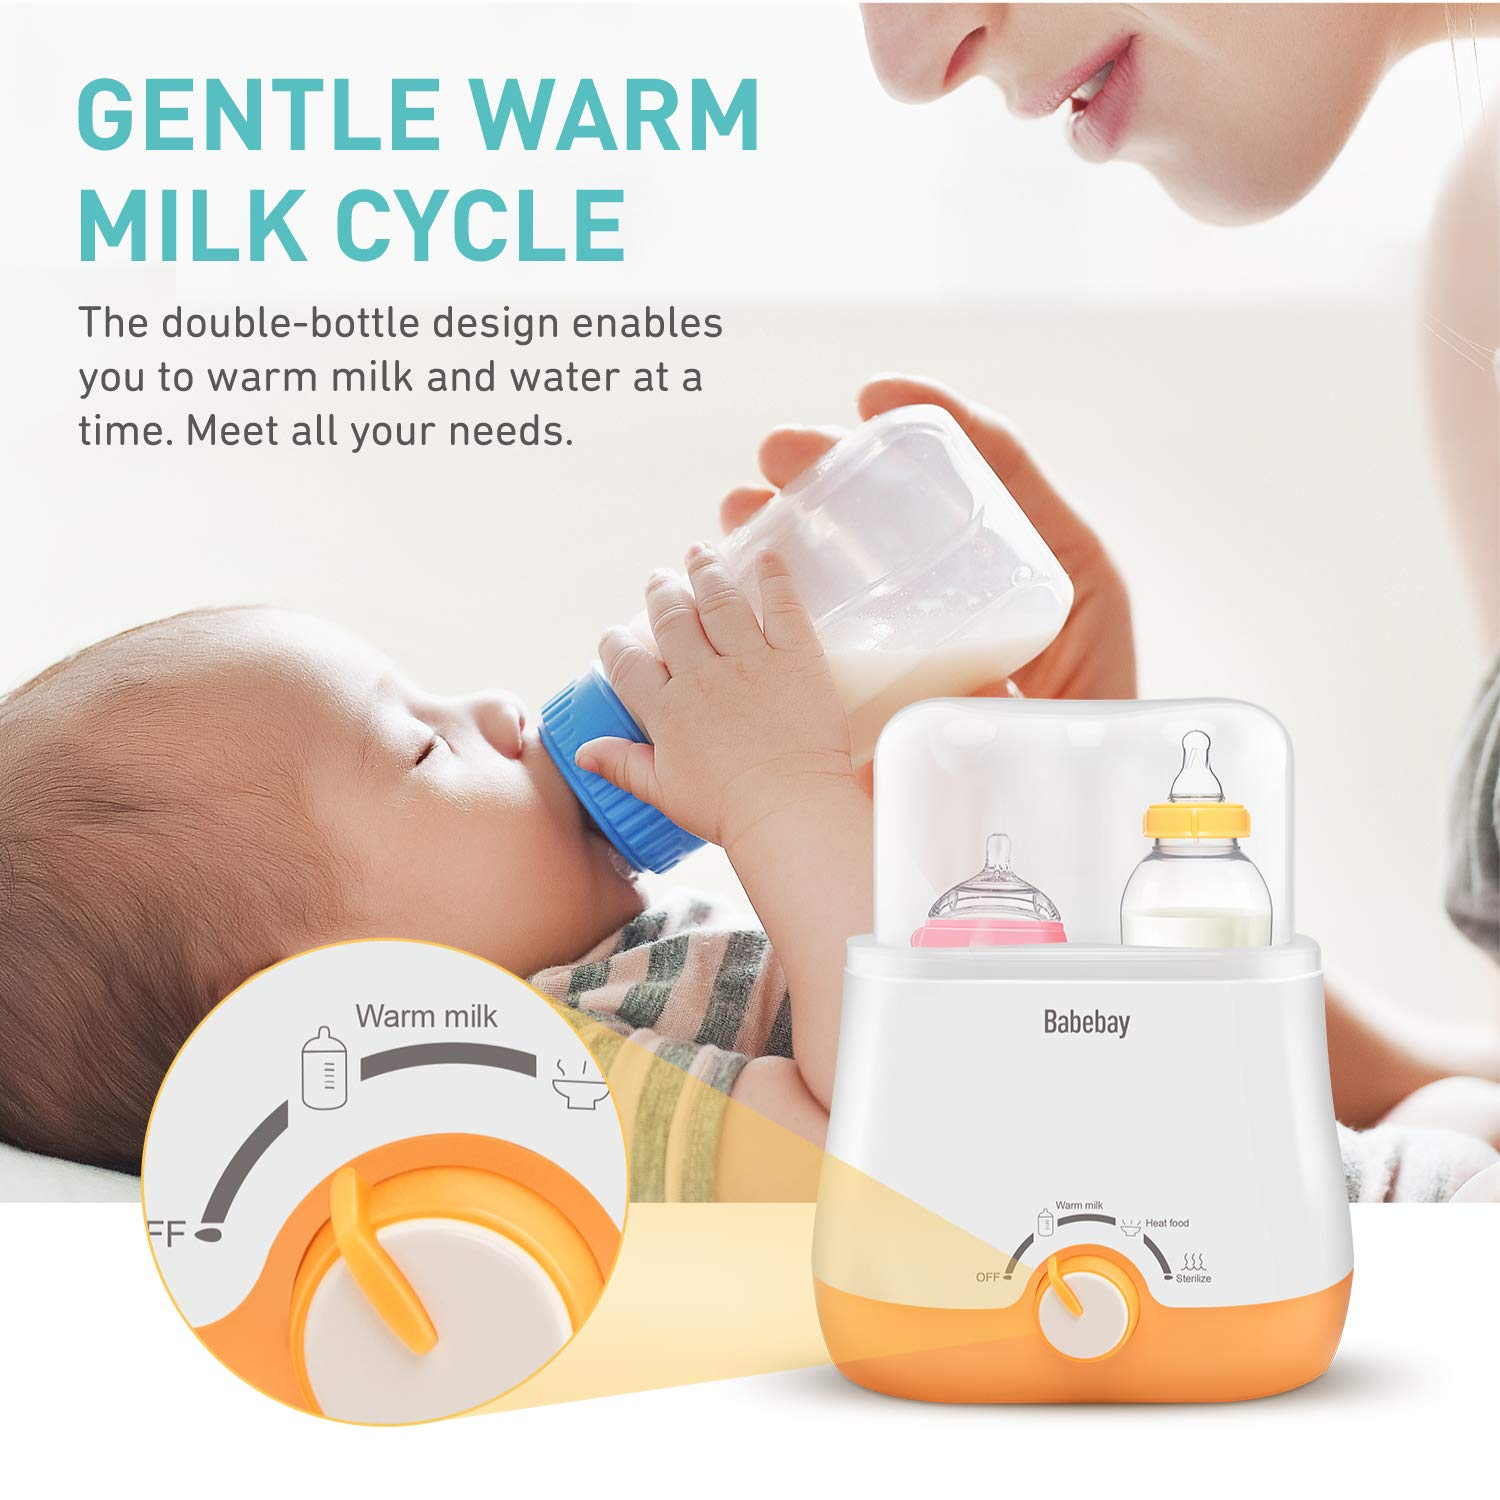 alpha-grp.co.jp Baby Warmers & Sterilizers 3 in 1 Functions with ...